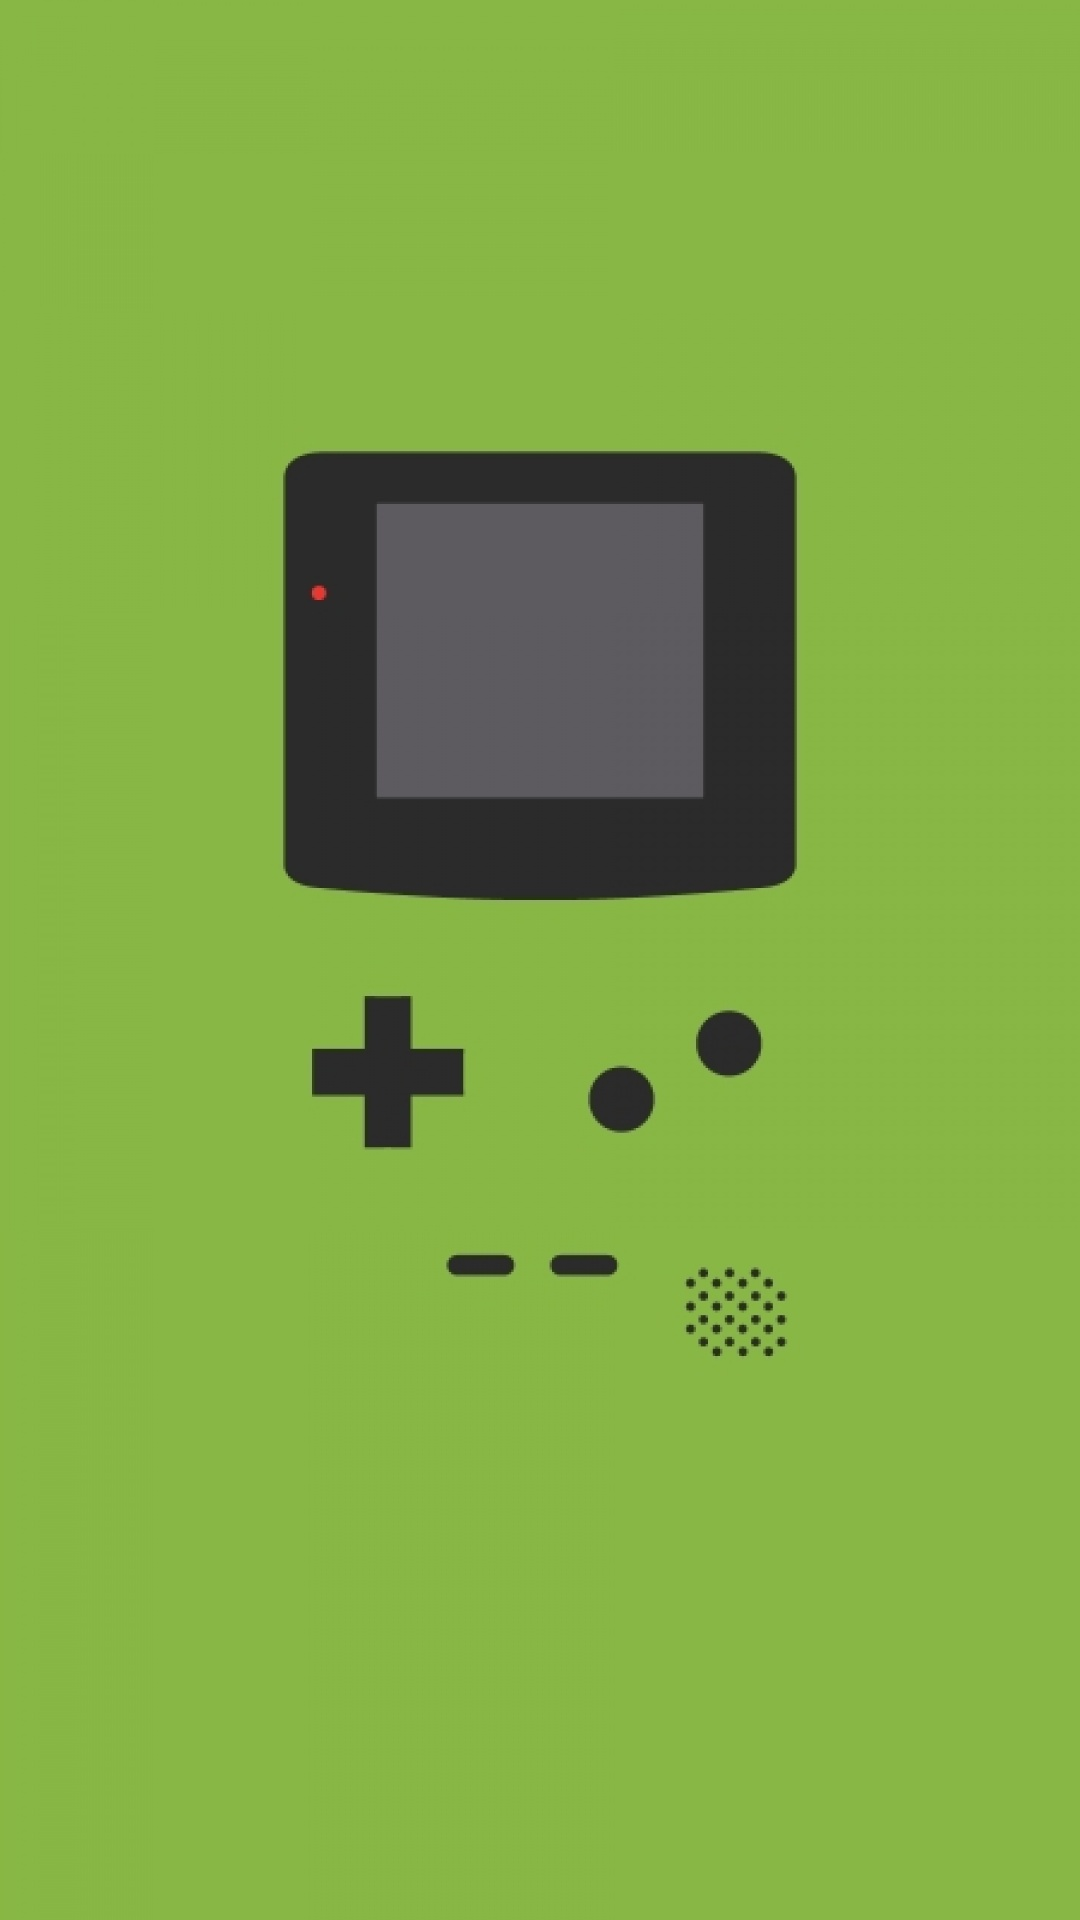 Video Game Iphone Wallpaper 1080x1920